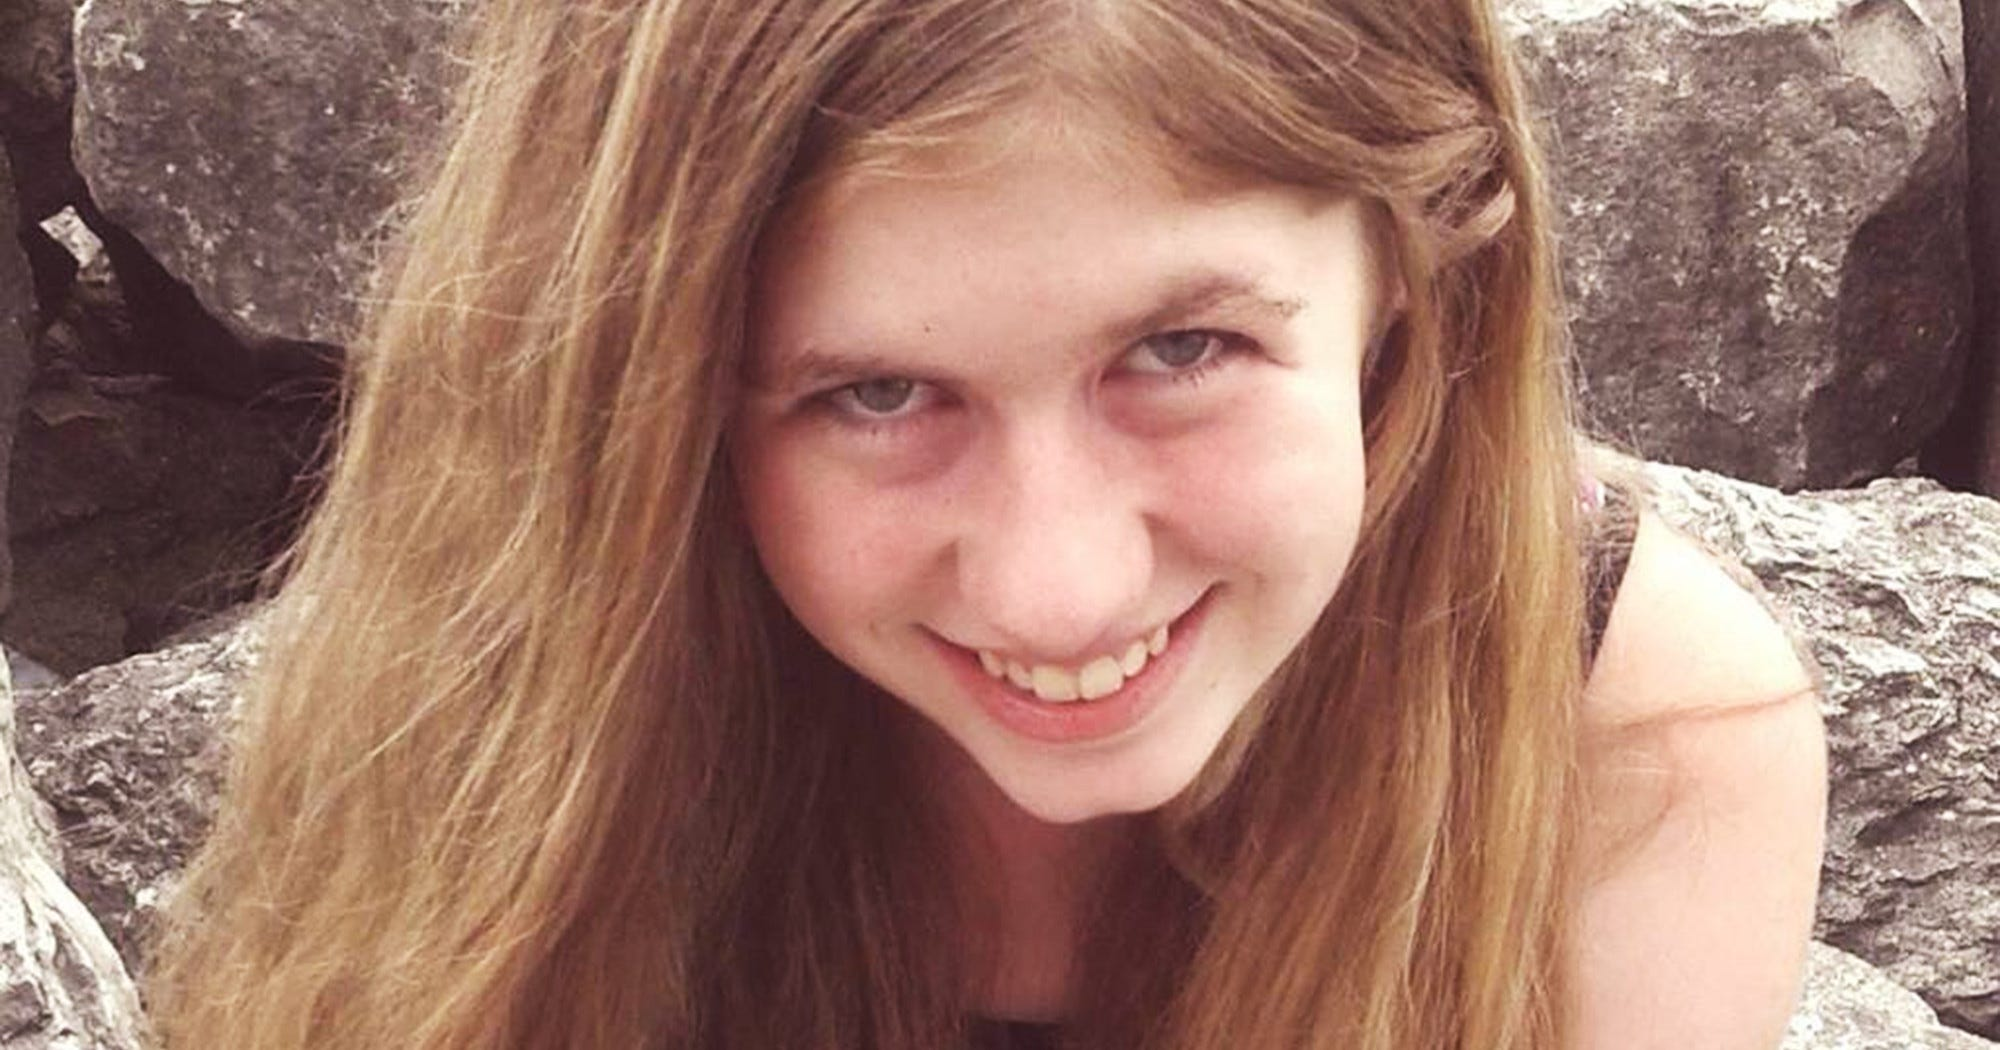 Wisconsin Teen Jayme Closs, Who Has Been Missing Since October, Has Been Found Alive